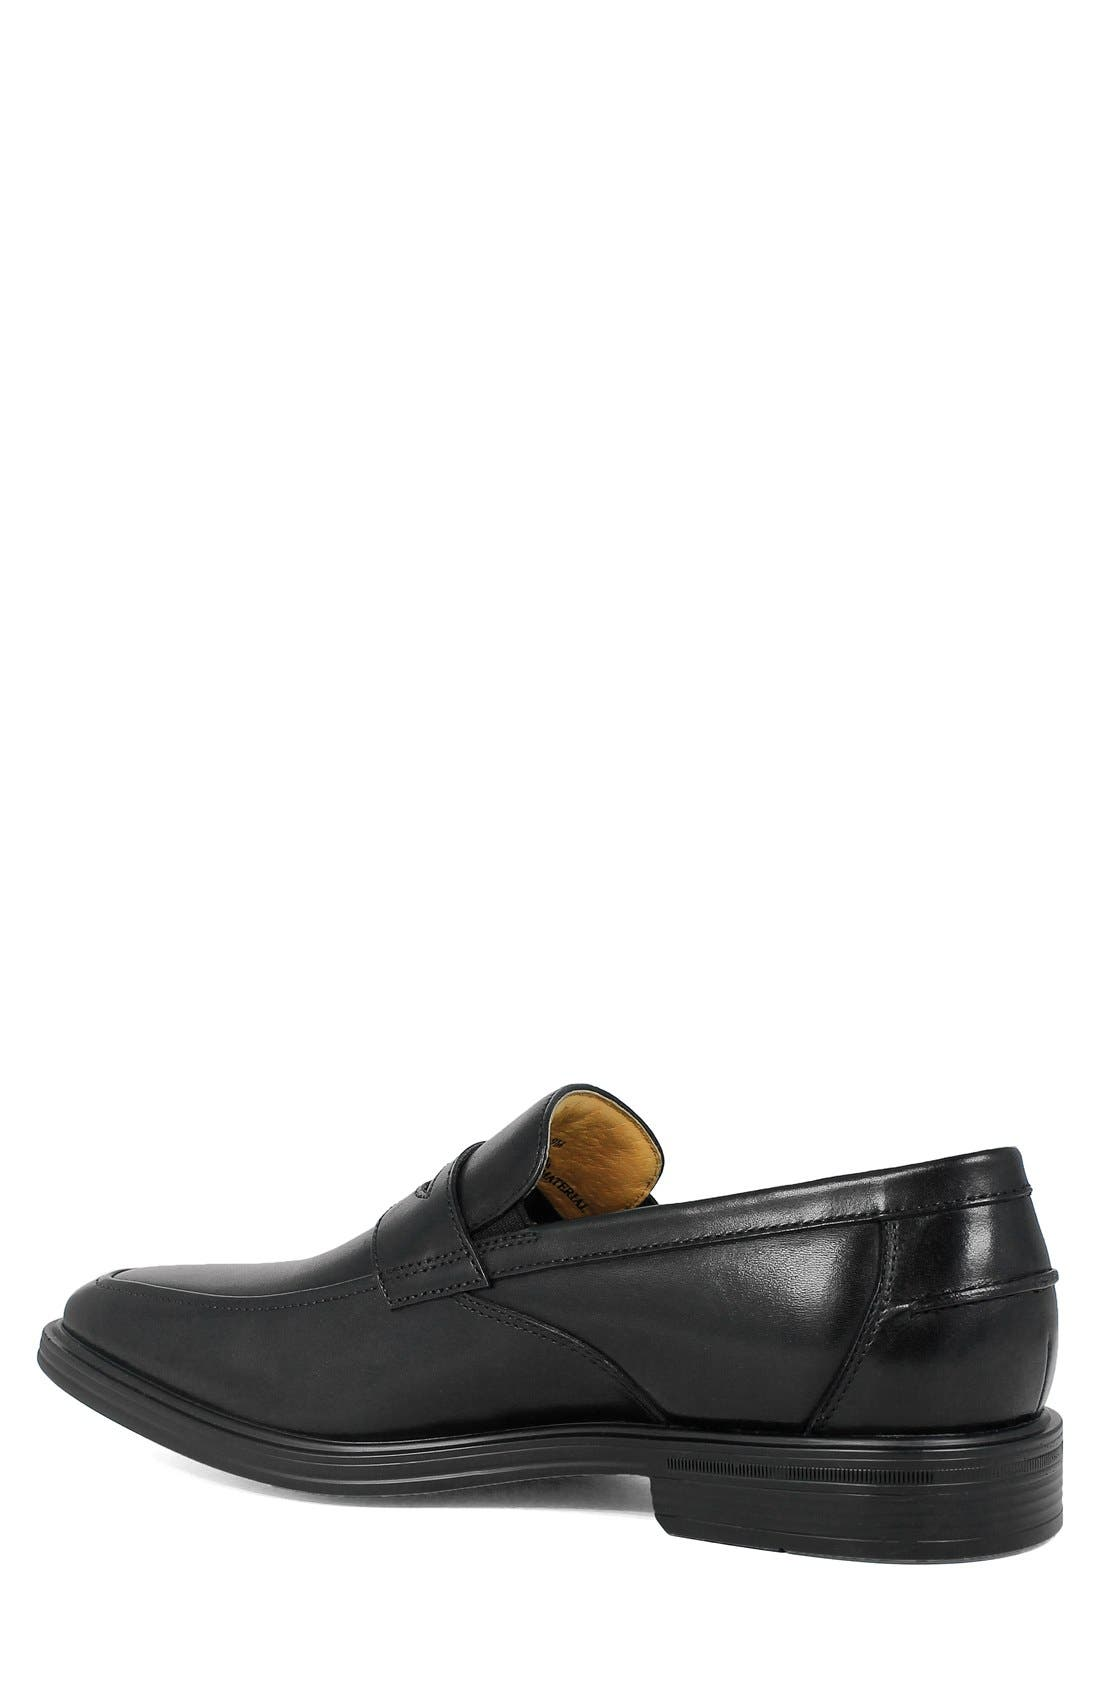 'Heights' Penny Loafer,                             Alternate thumbnail 2, color,                             Black Leather